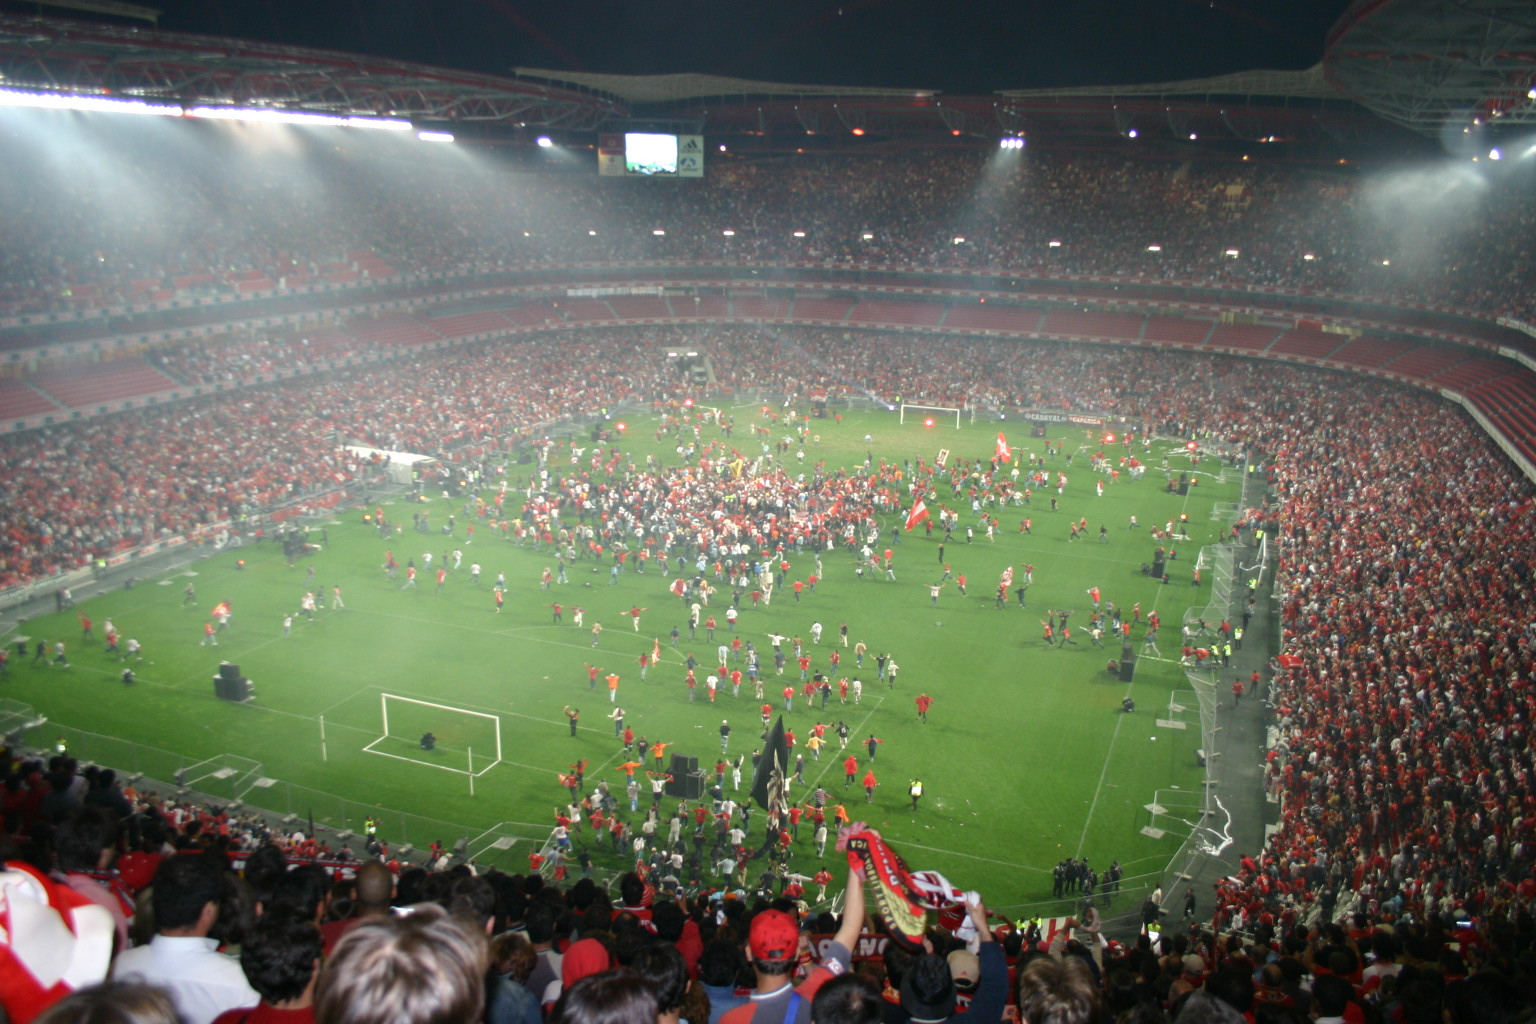 110e917ad0 S.L. Benfica - Wikiwand